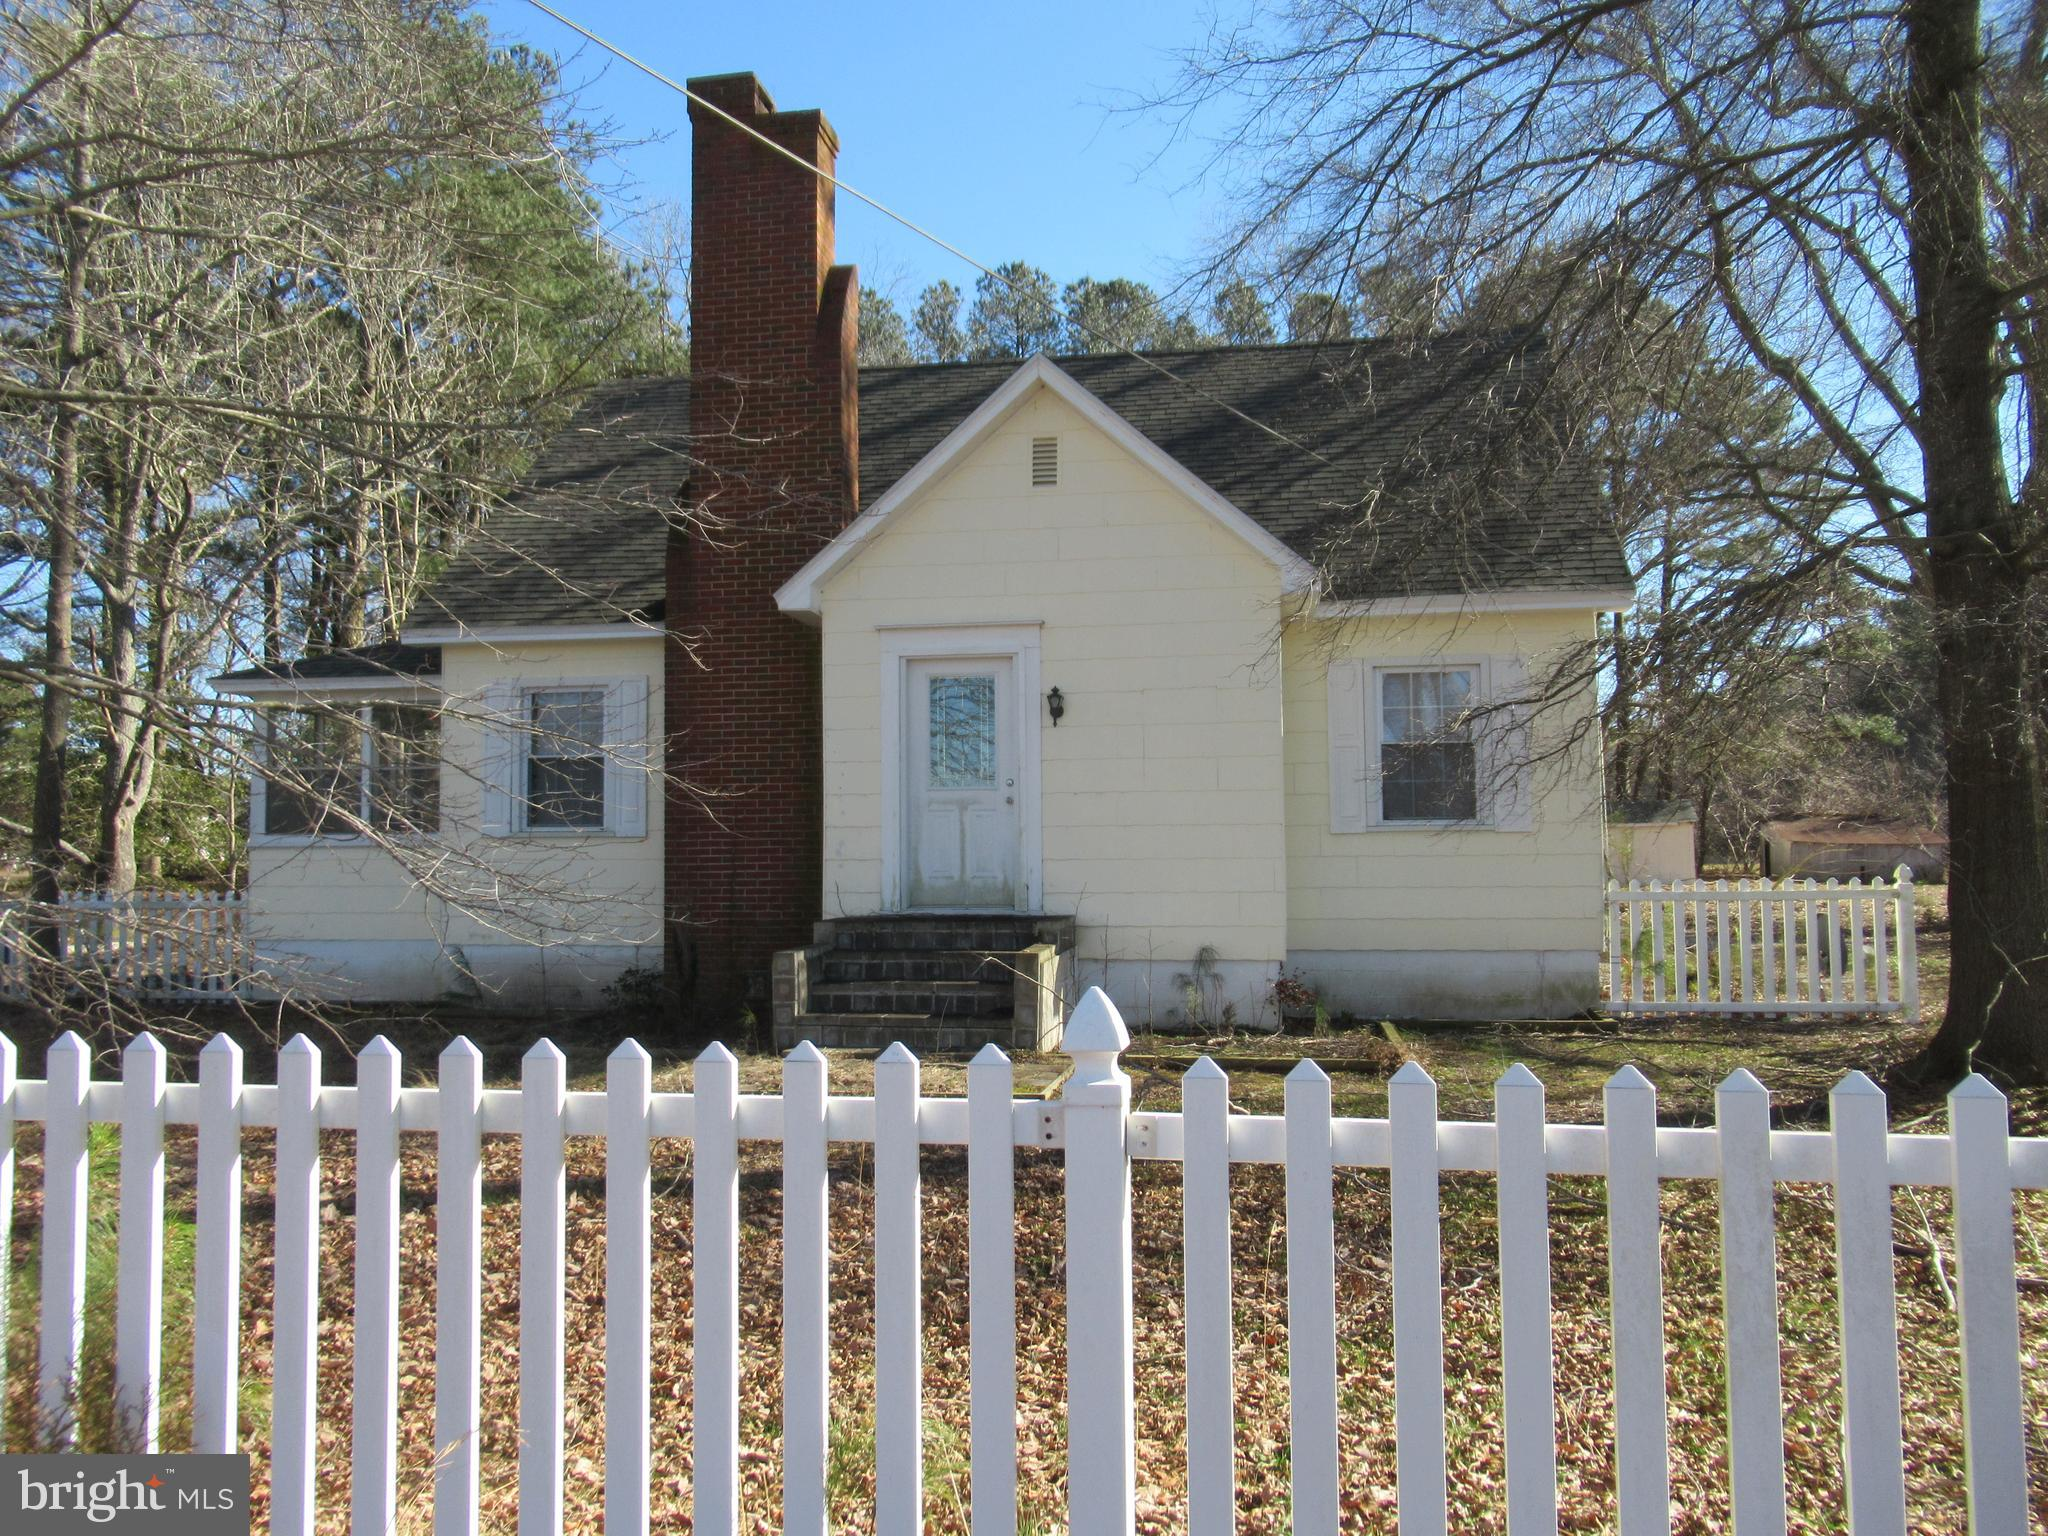 28229 CRISFIELD MARION ROAD, MARION STATION, MD 21838